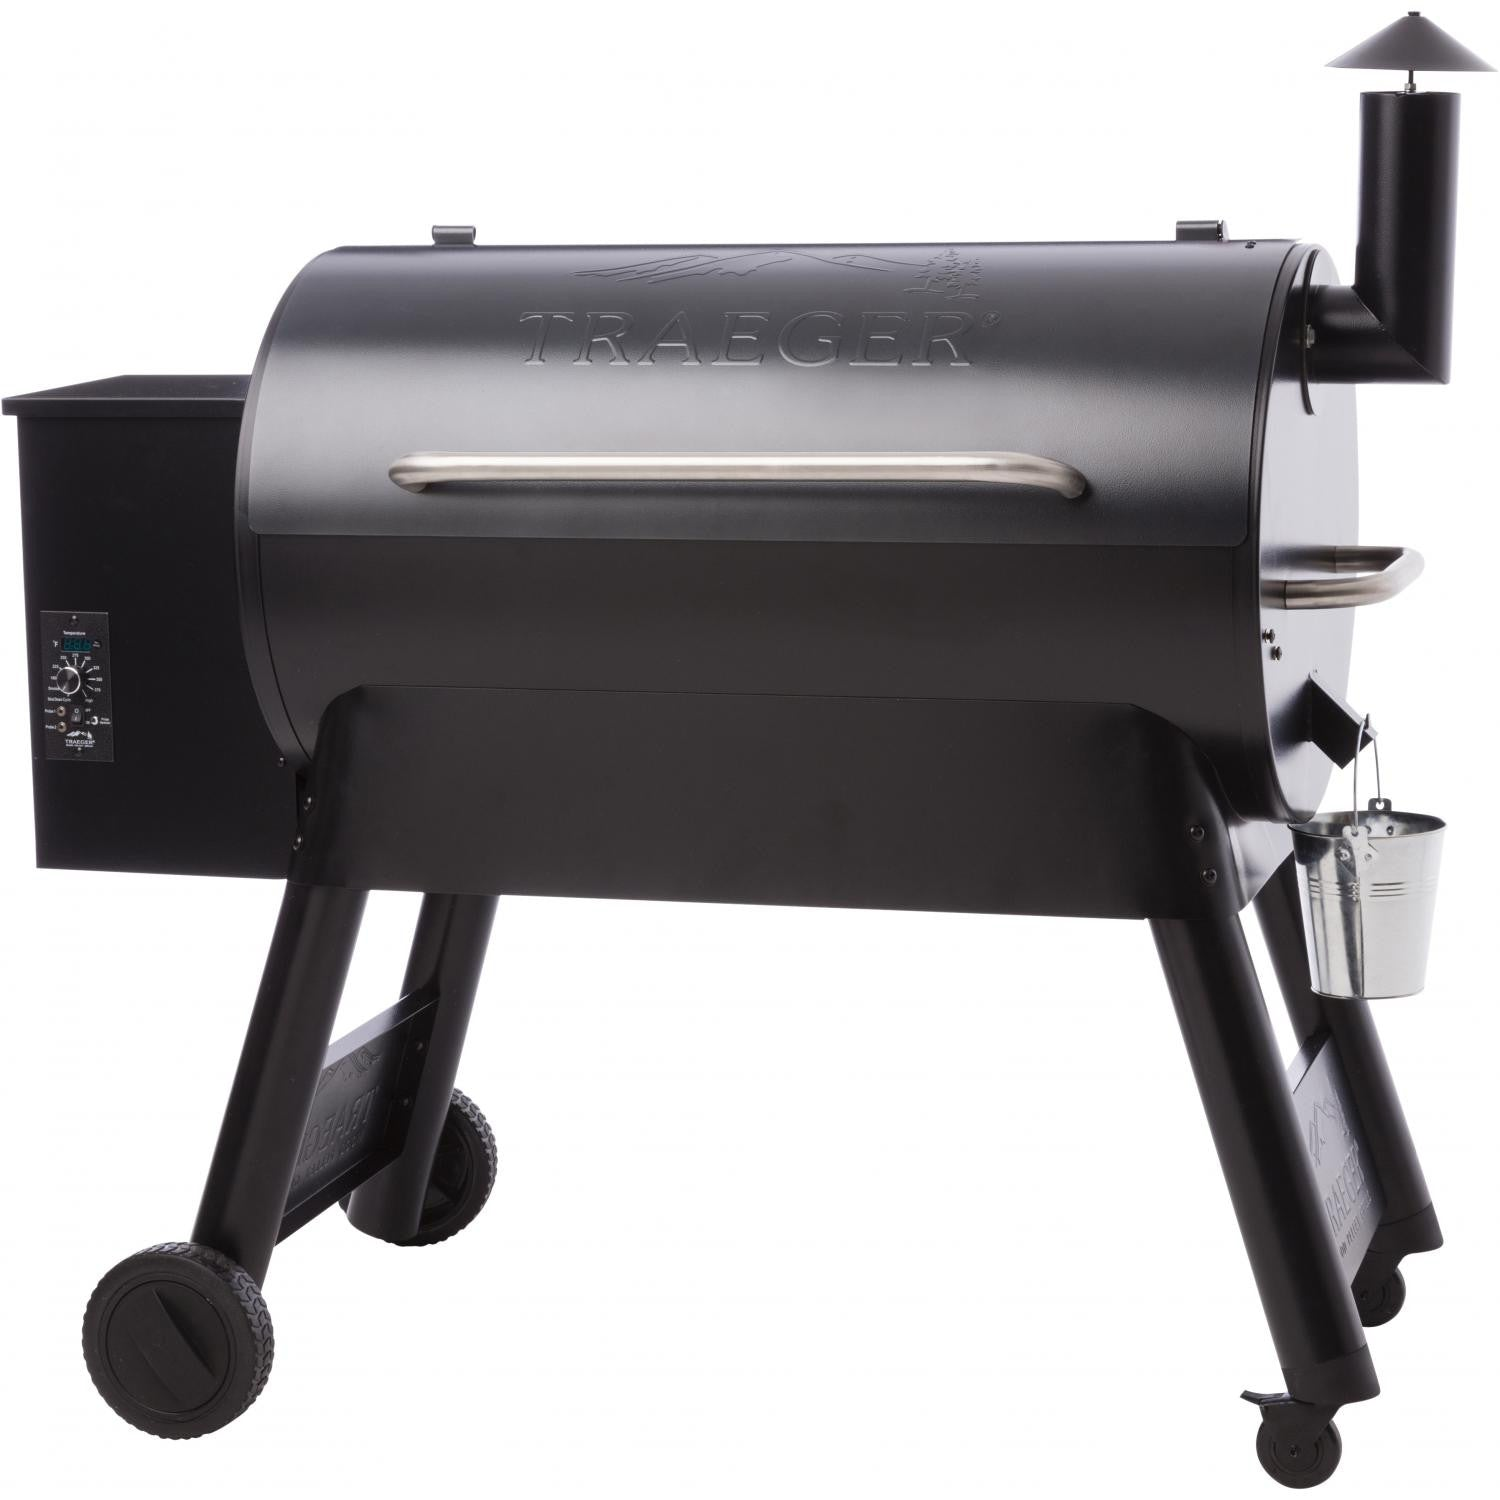 Traeger Pro Series 34 CLEARANCE SALE. New in the box